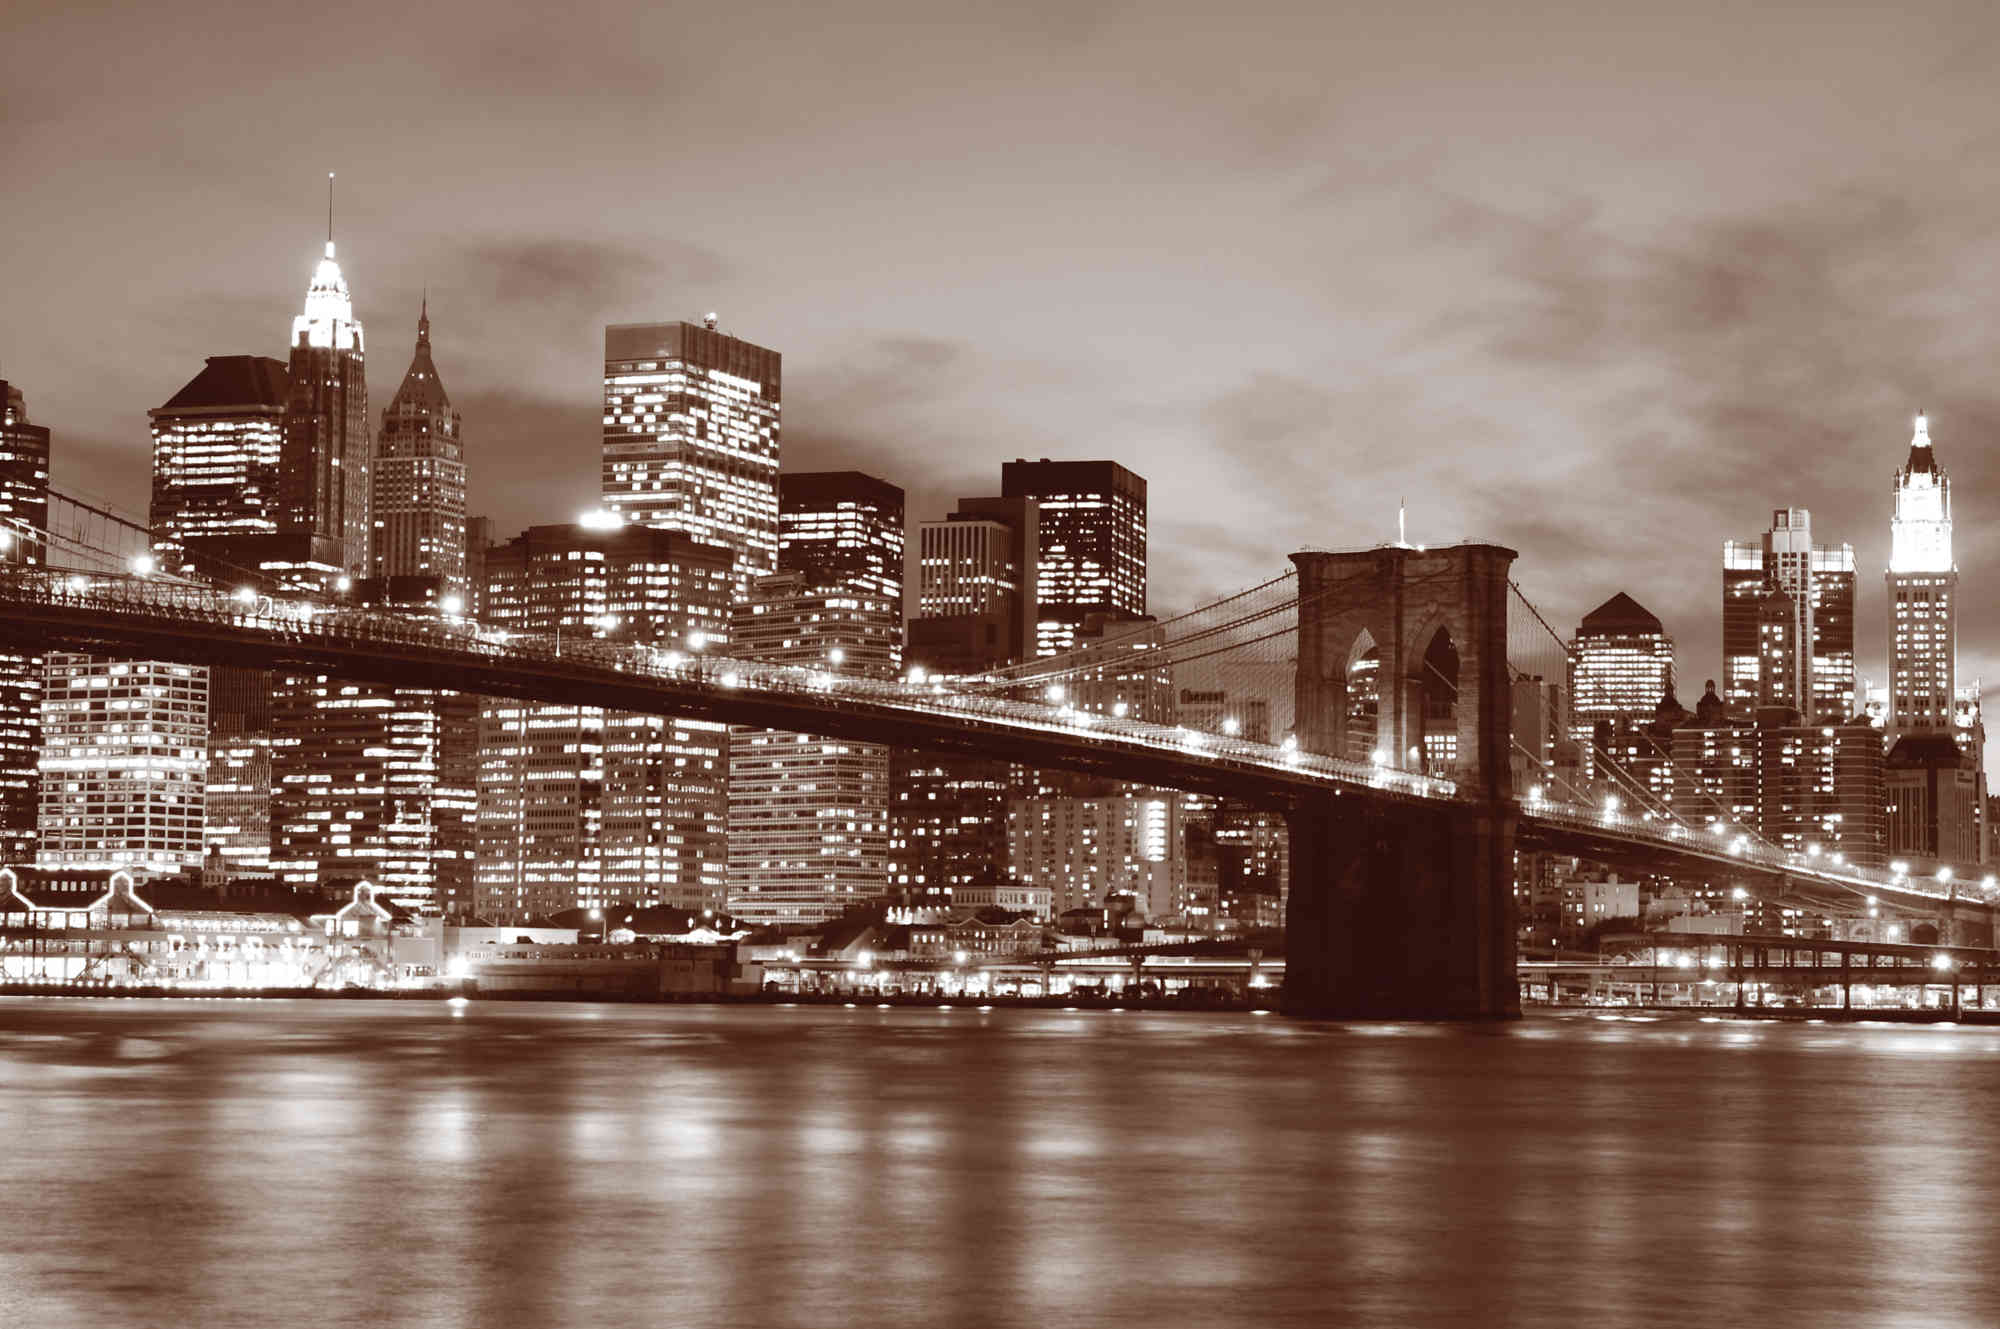 MU1241 - Brooklyn Bridge at Night (Sepia)